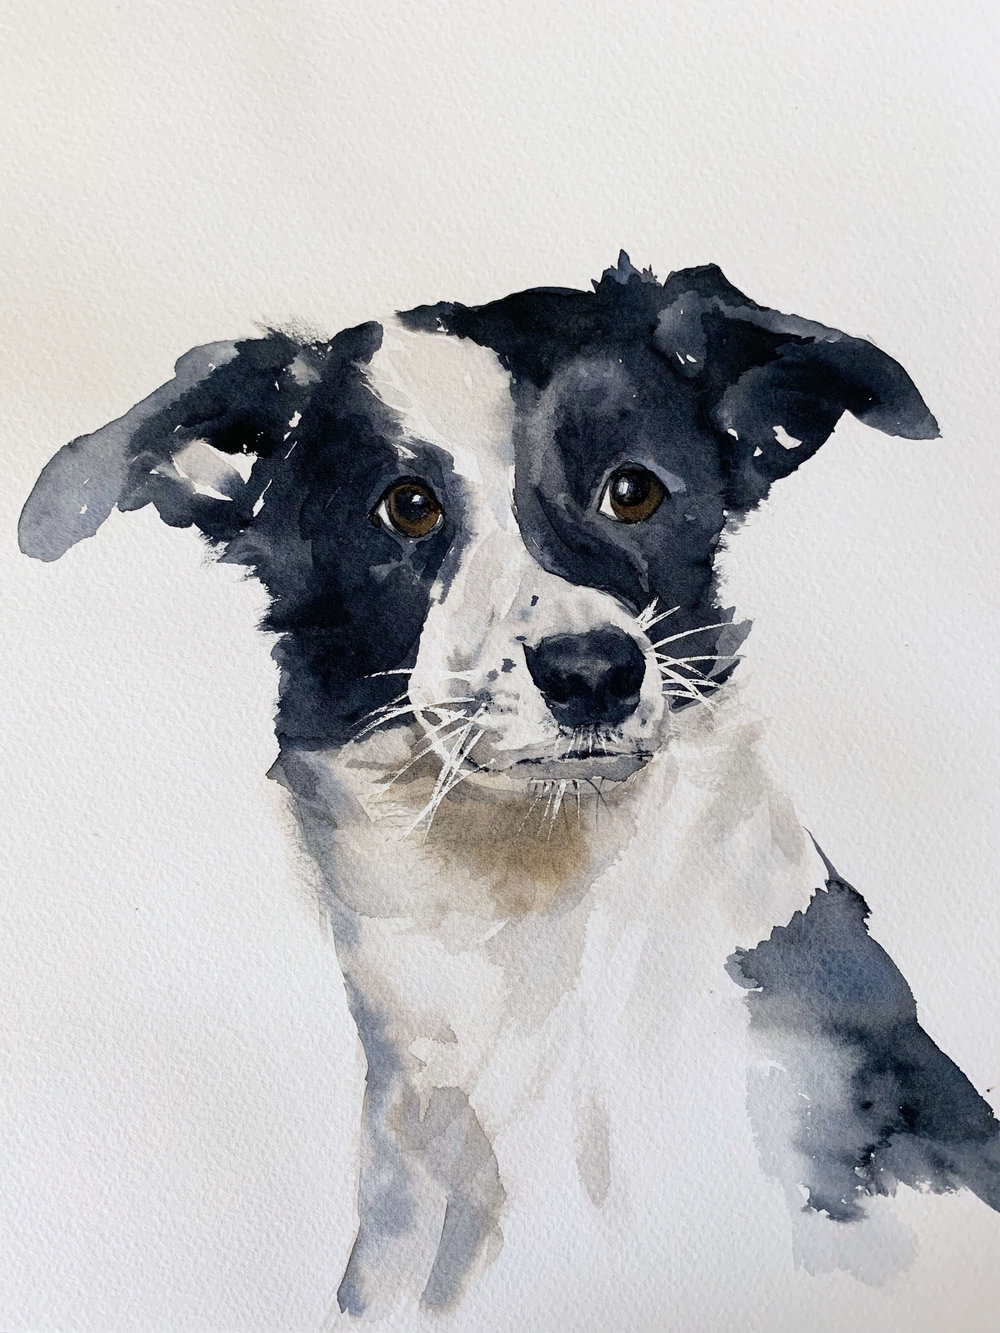 Susan Chiang: Watercolor practice: learning to paint Maisa the dog (attempt #2)